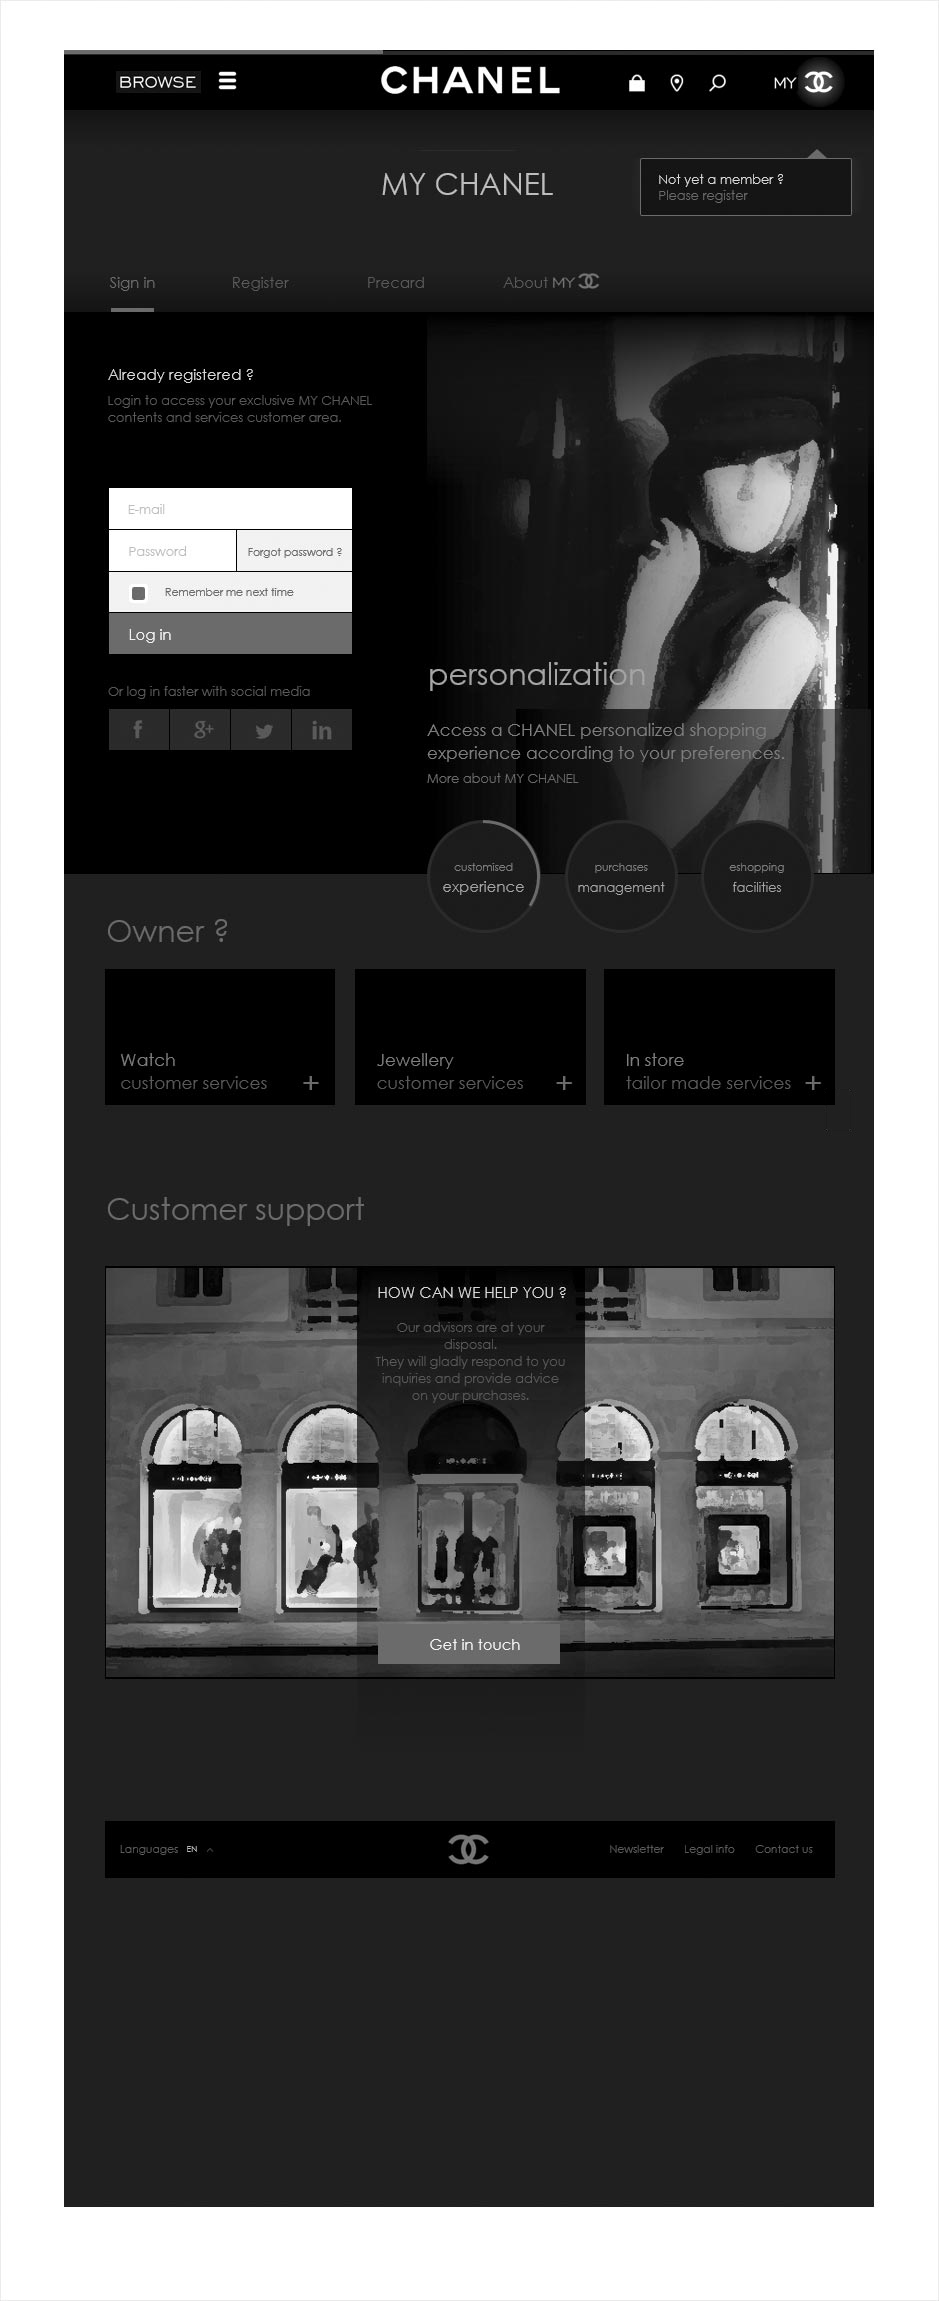 connexion, wireframe espace client CHANEL